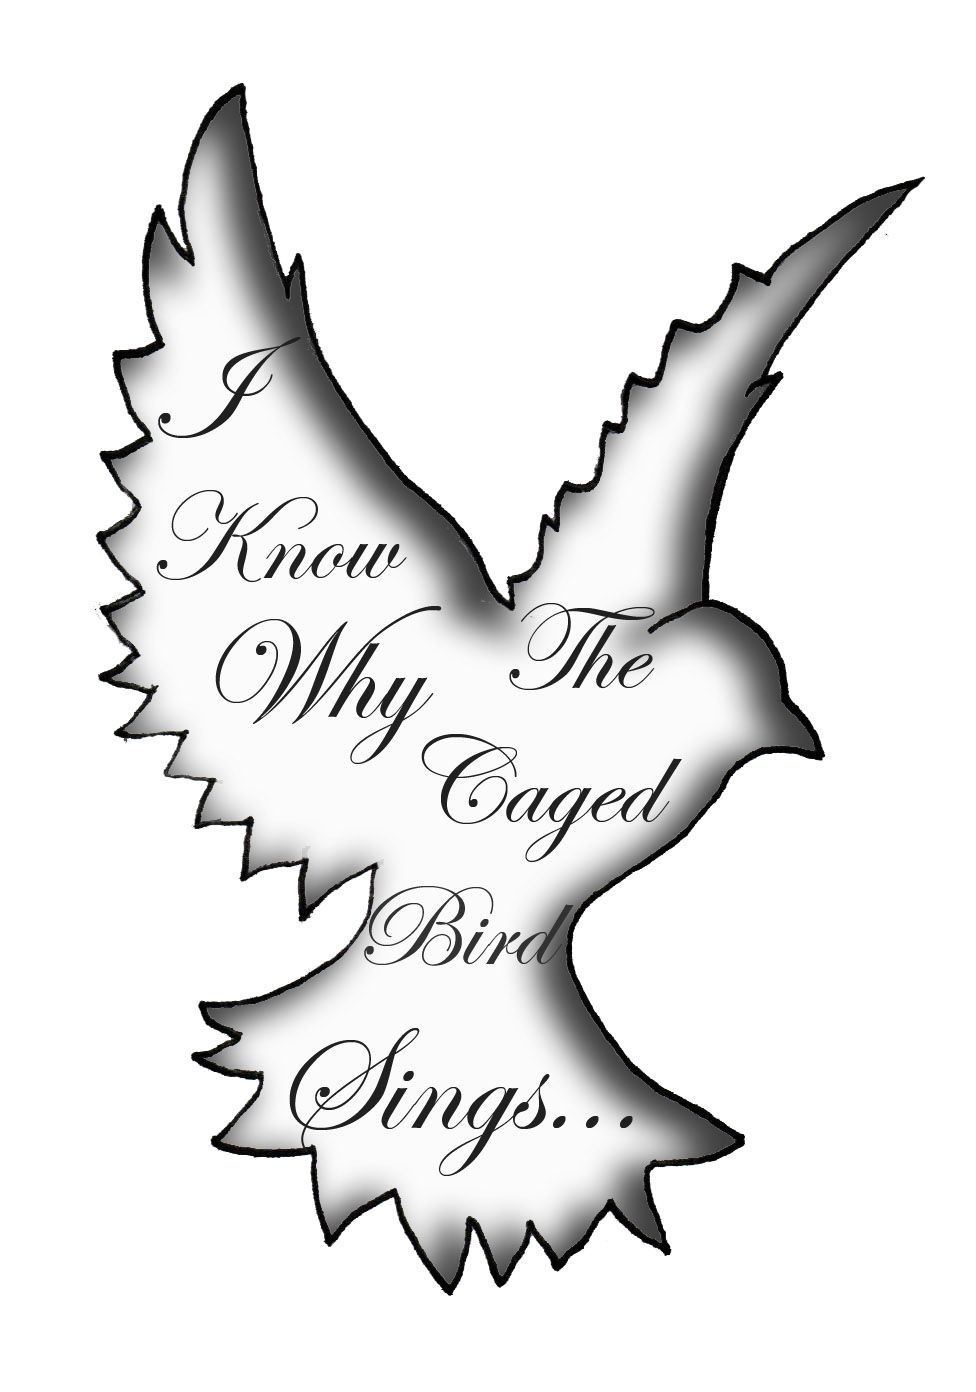 Ideas about bird tattoos on pinterest tattoos - Feather Bird Tattoo Drawings Favorite Q View Full Size